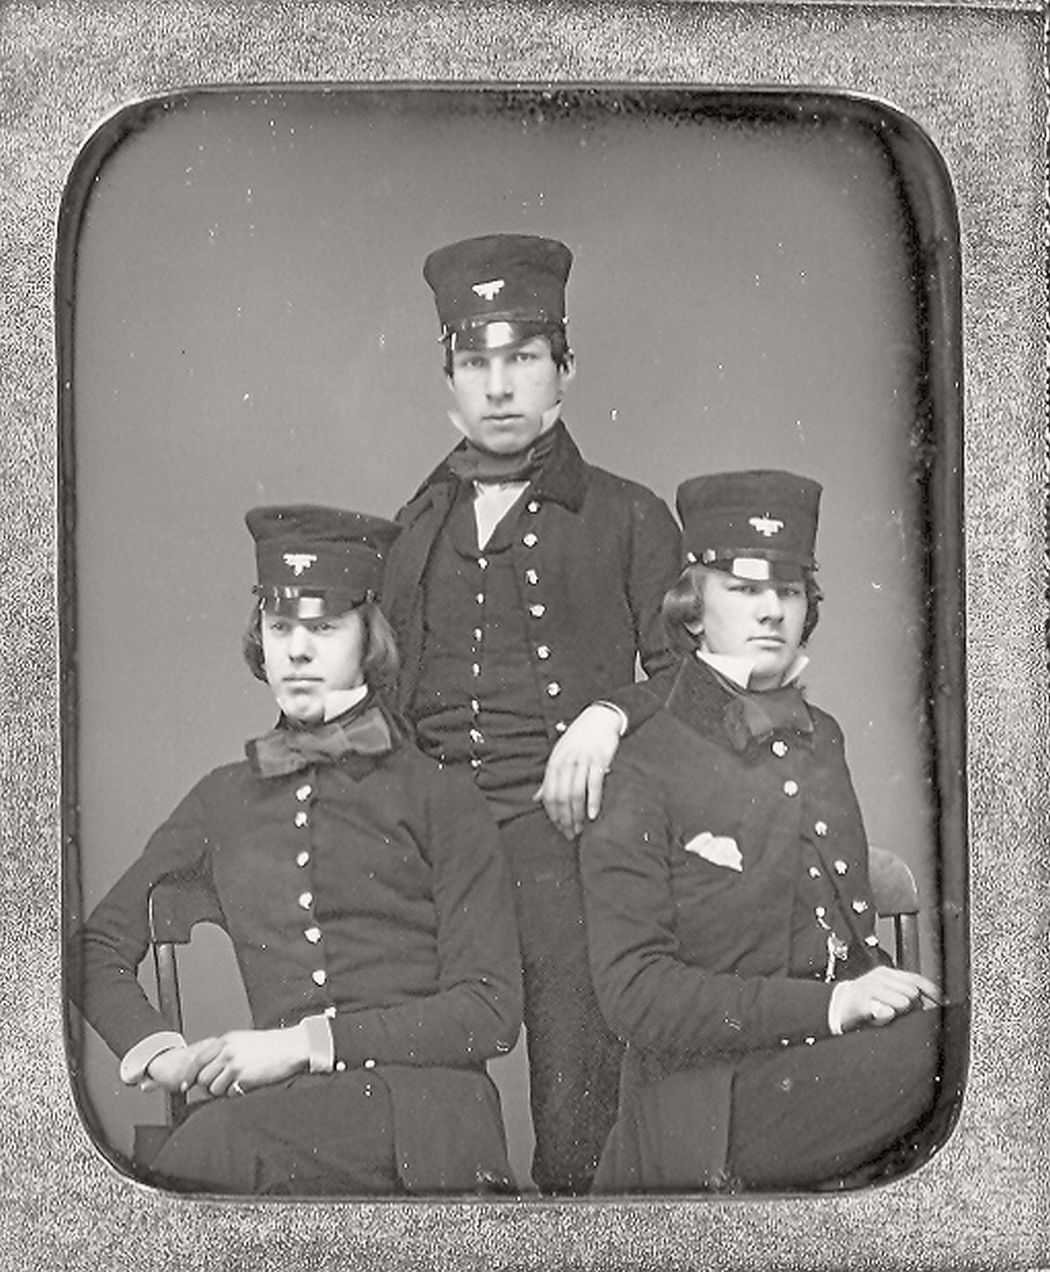 victorian-era-daguerreotype-of-men-in-hat-1850s-xix-century-23